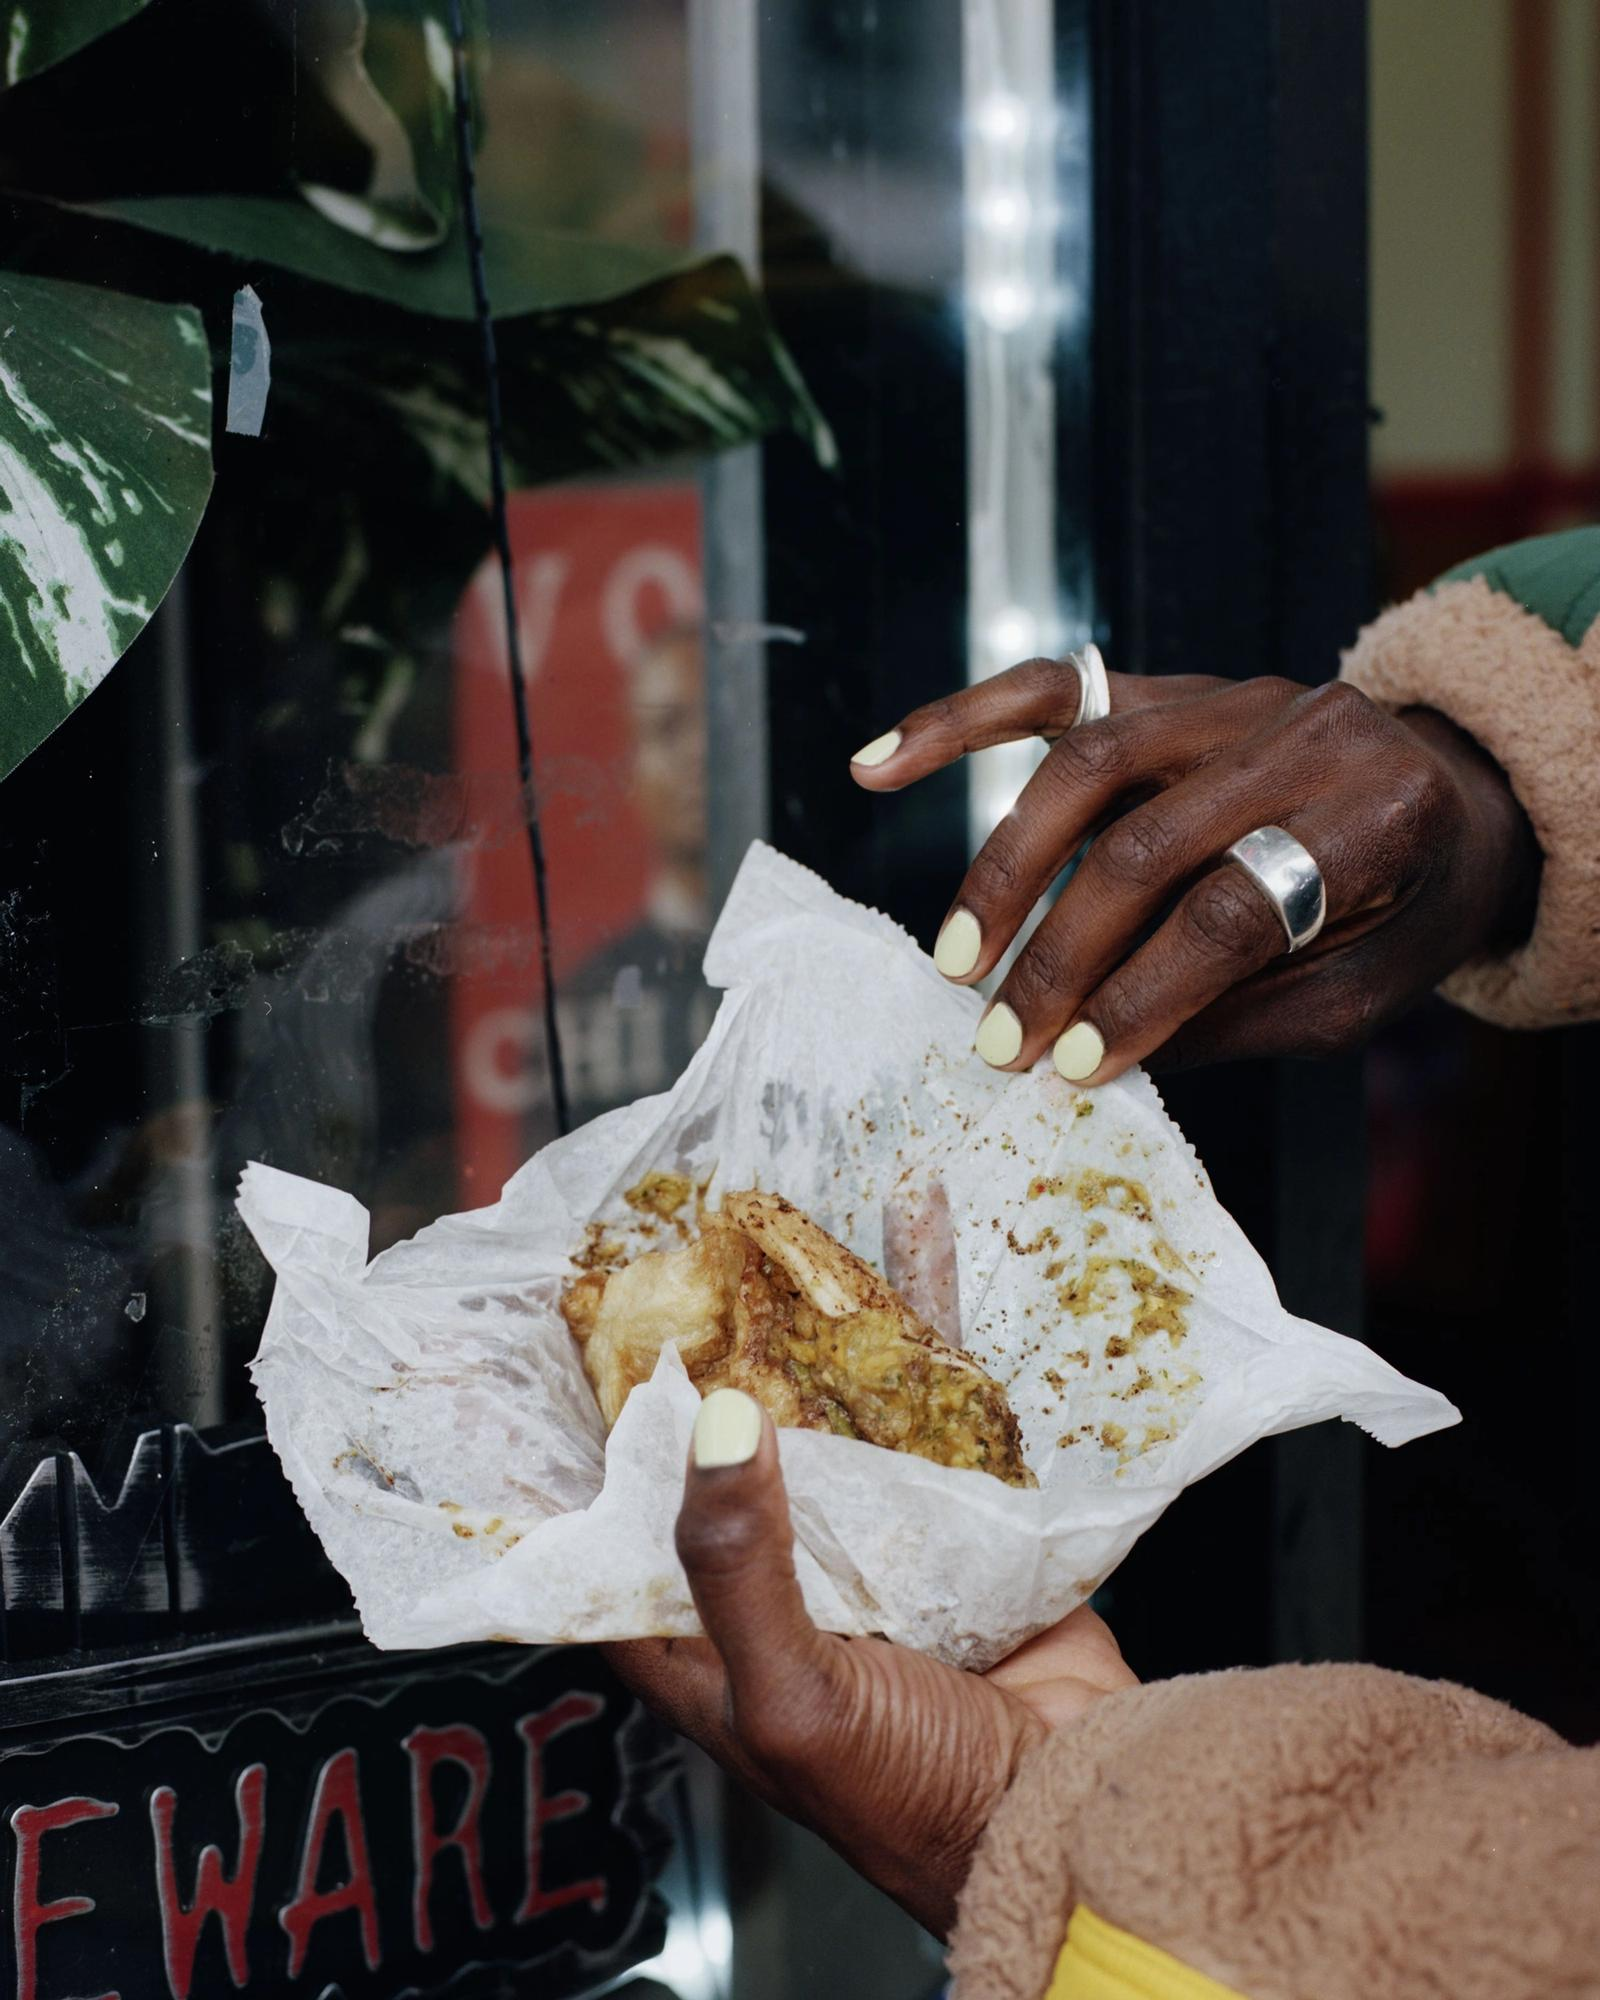 Devonn Francis' hands holding a curry.